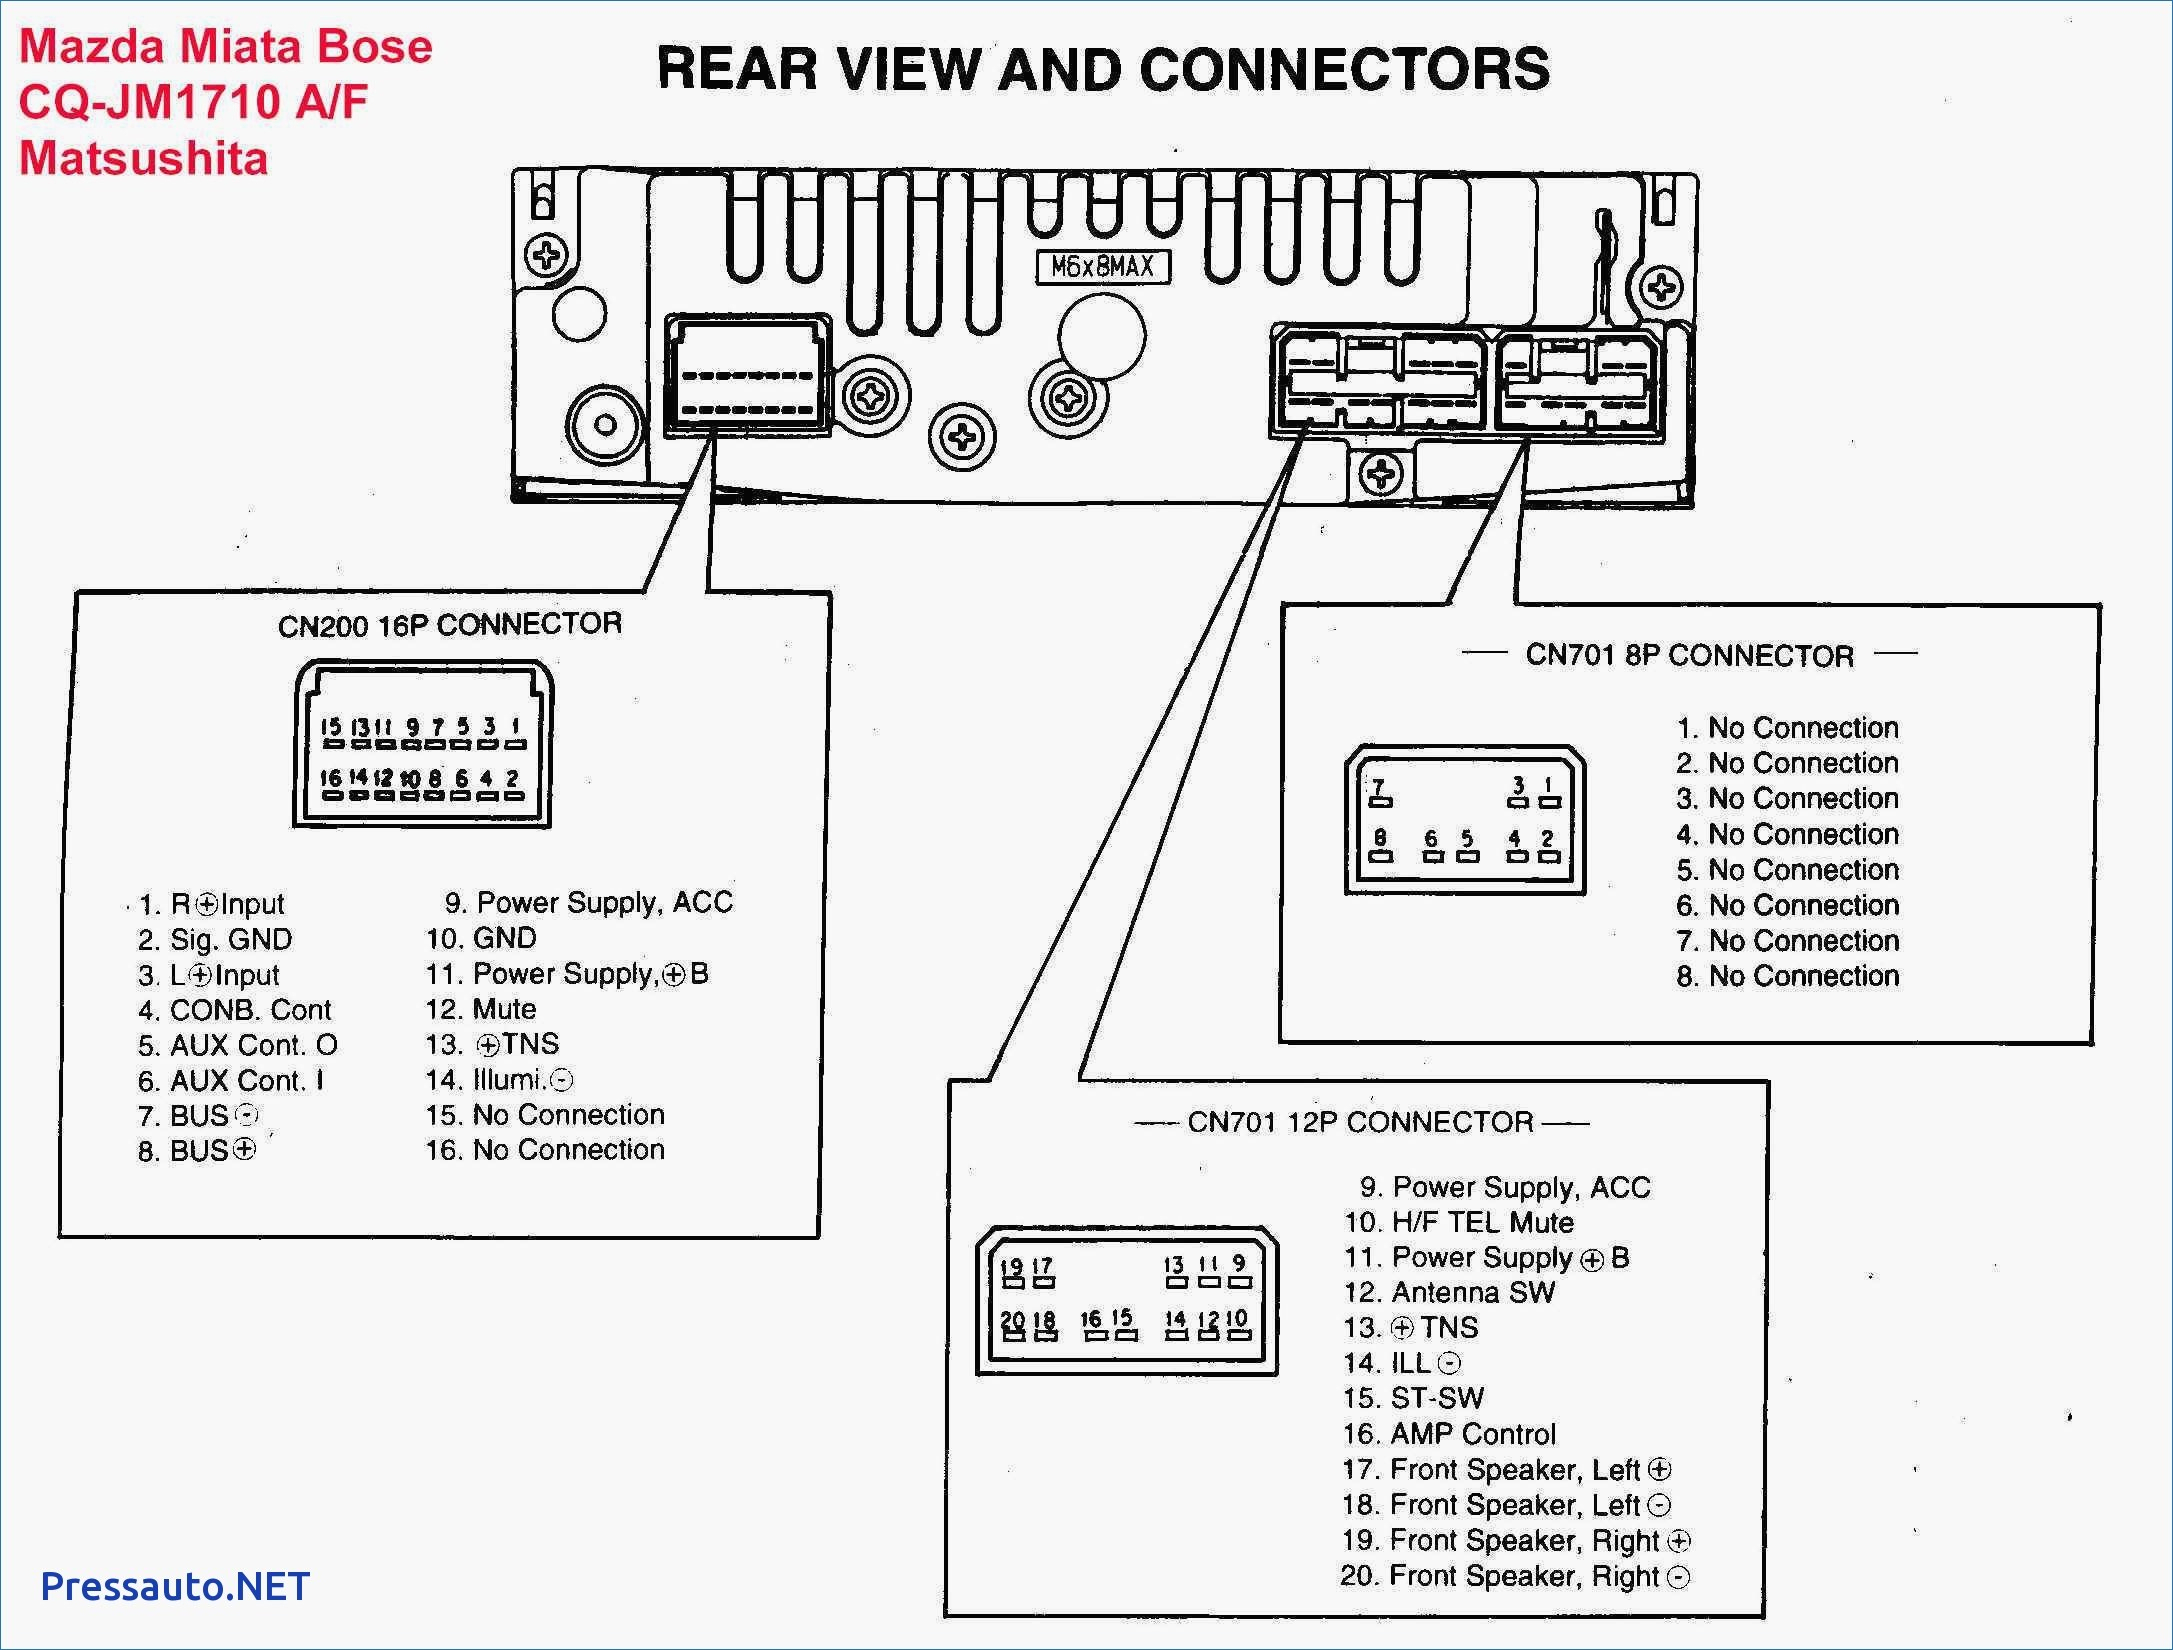 Pioneer Super Tuner 3D Wiring Diagram | Wiring Diagram - Pioneer Super Tuner 3D Wiring Diagram